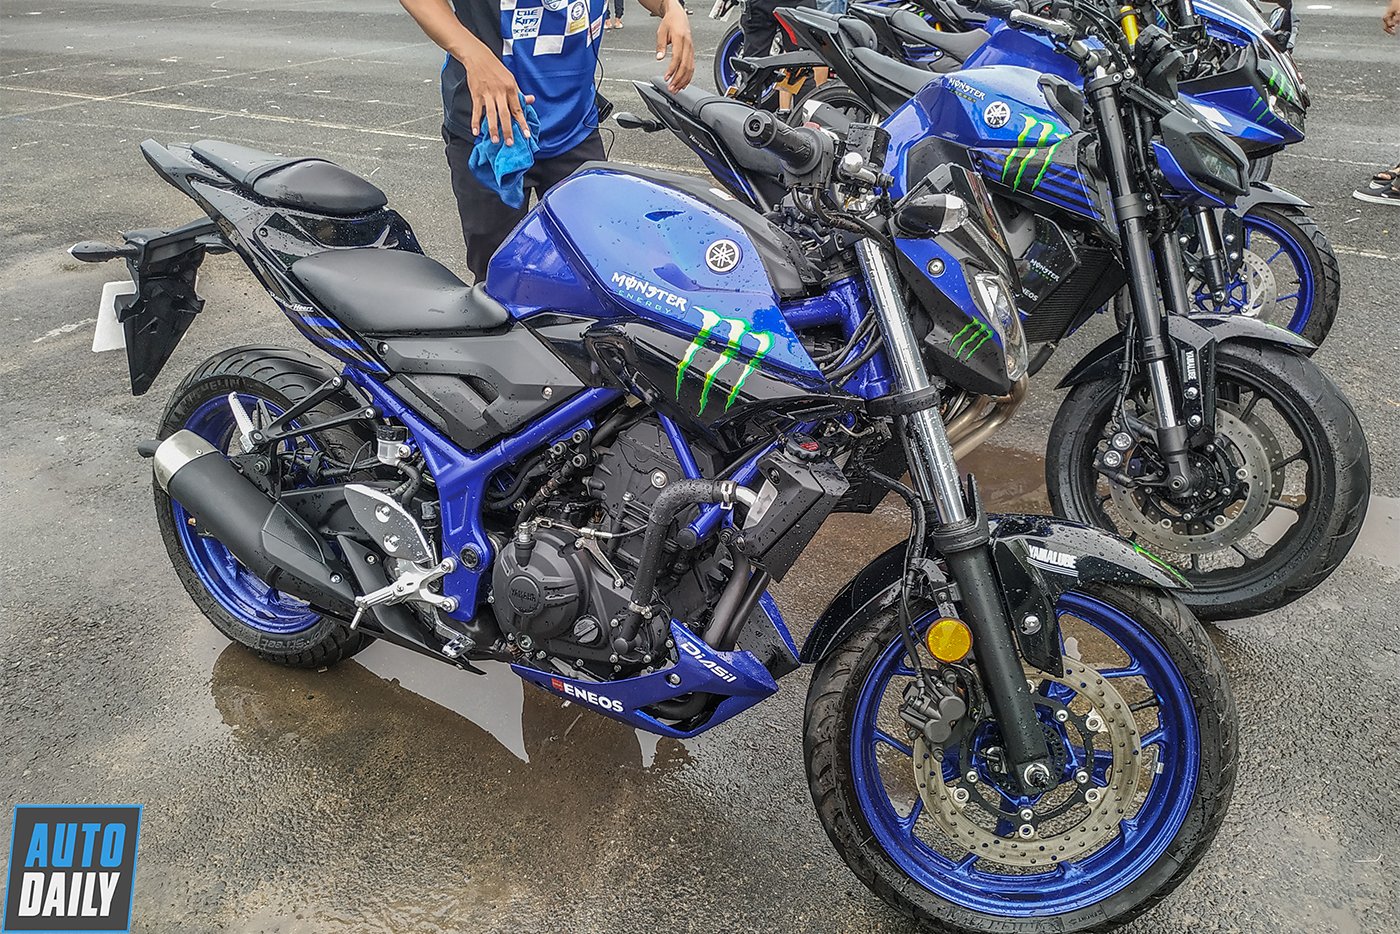 yamaha-monster-energy-16.jpg